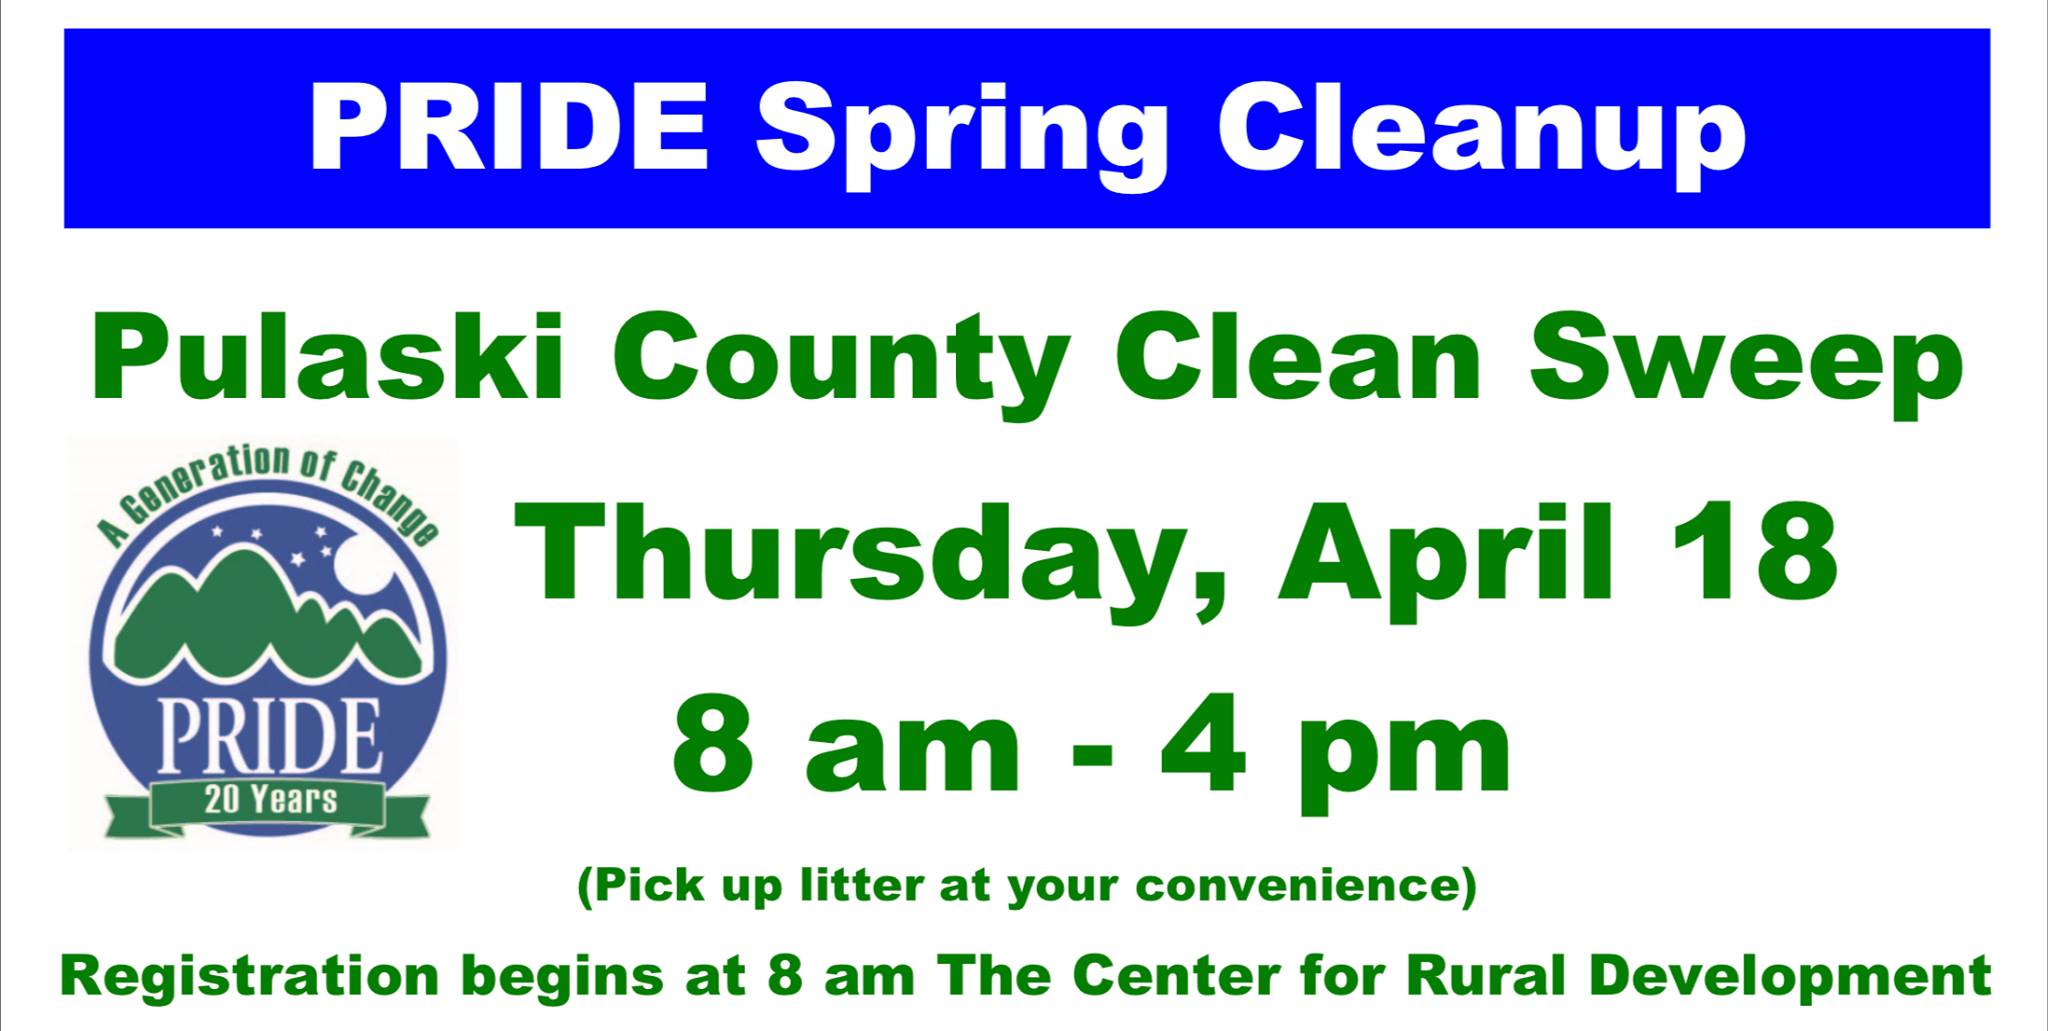 Pulaski County Clean Sweep @ The Center for Rural Development